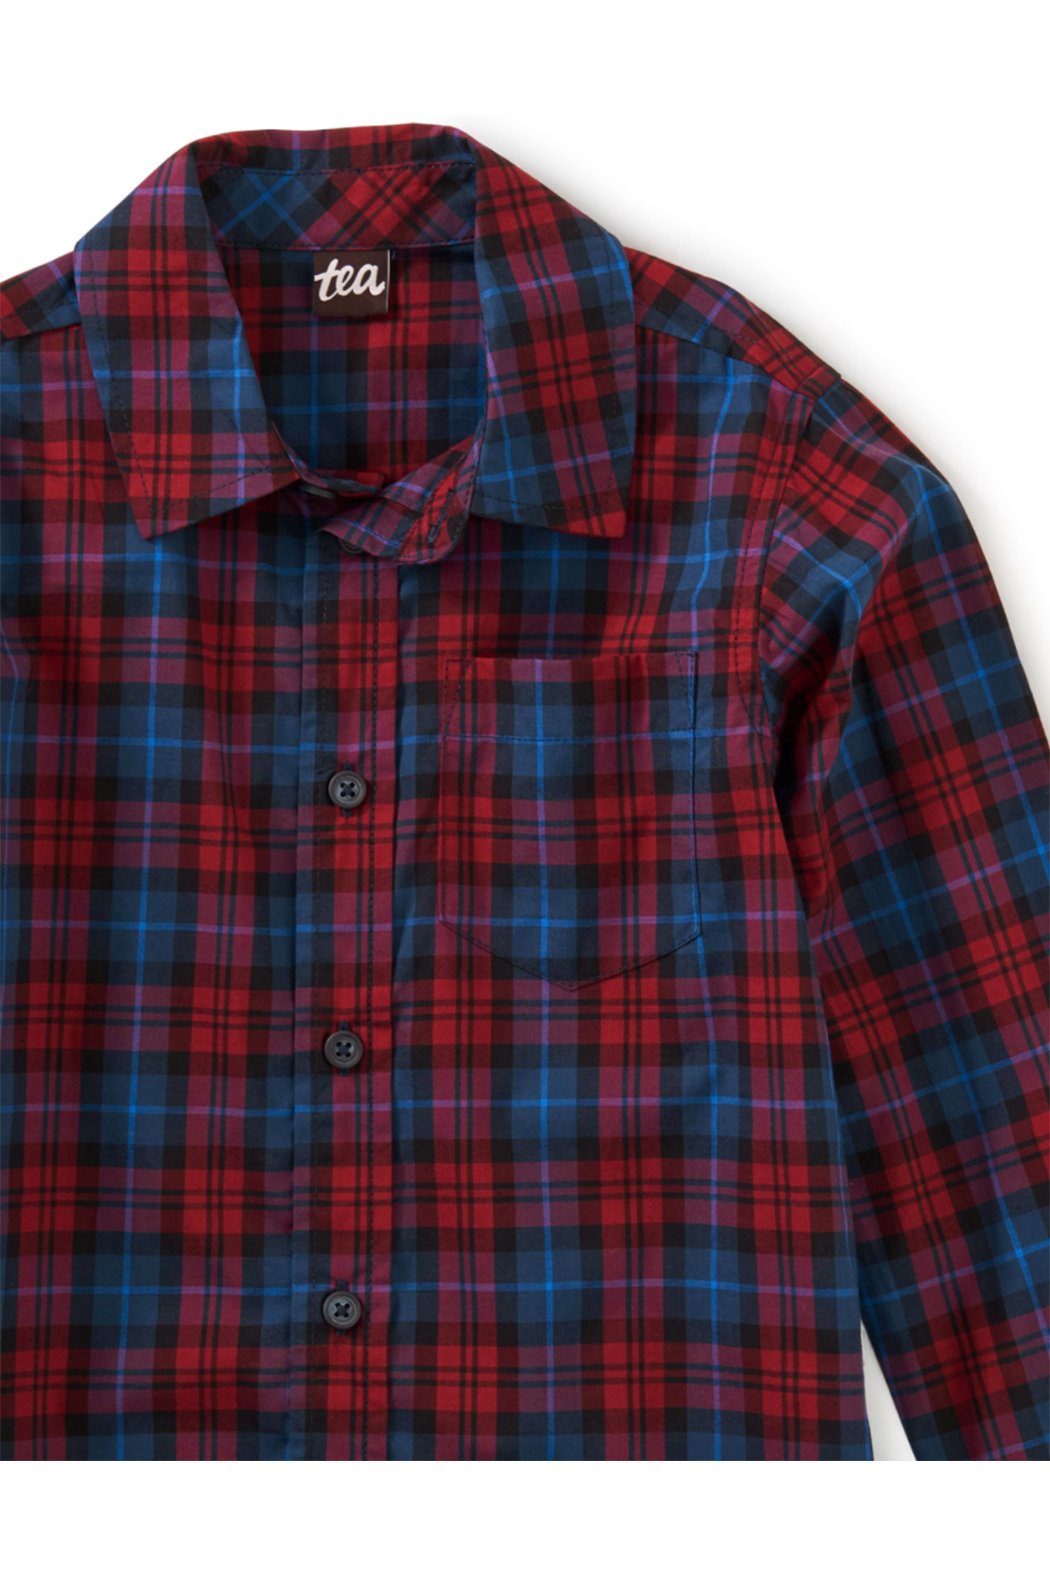 Tea Collection Family Plaid Button Shirt - Front Full Image